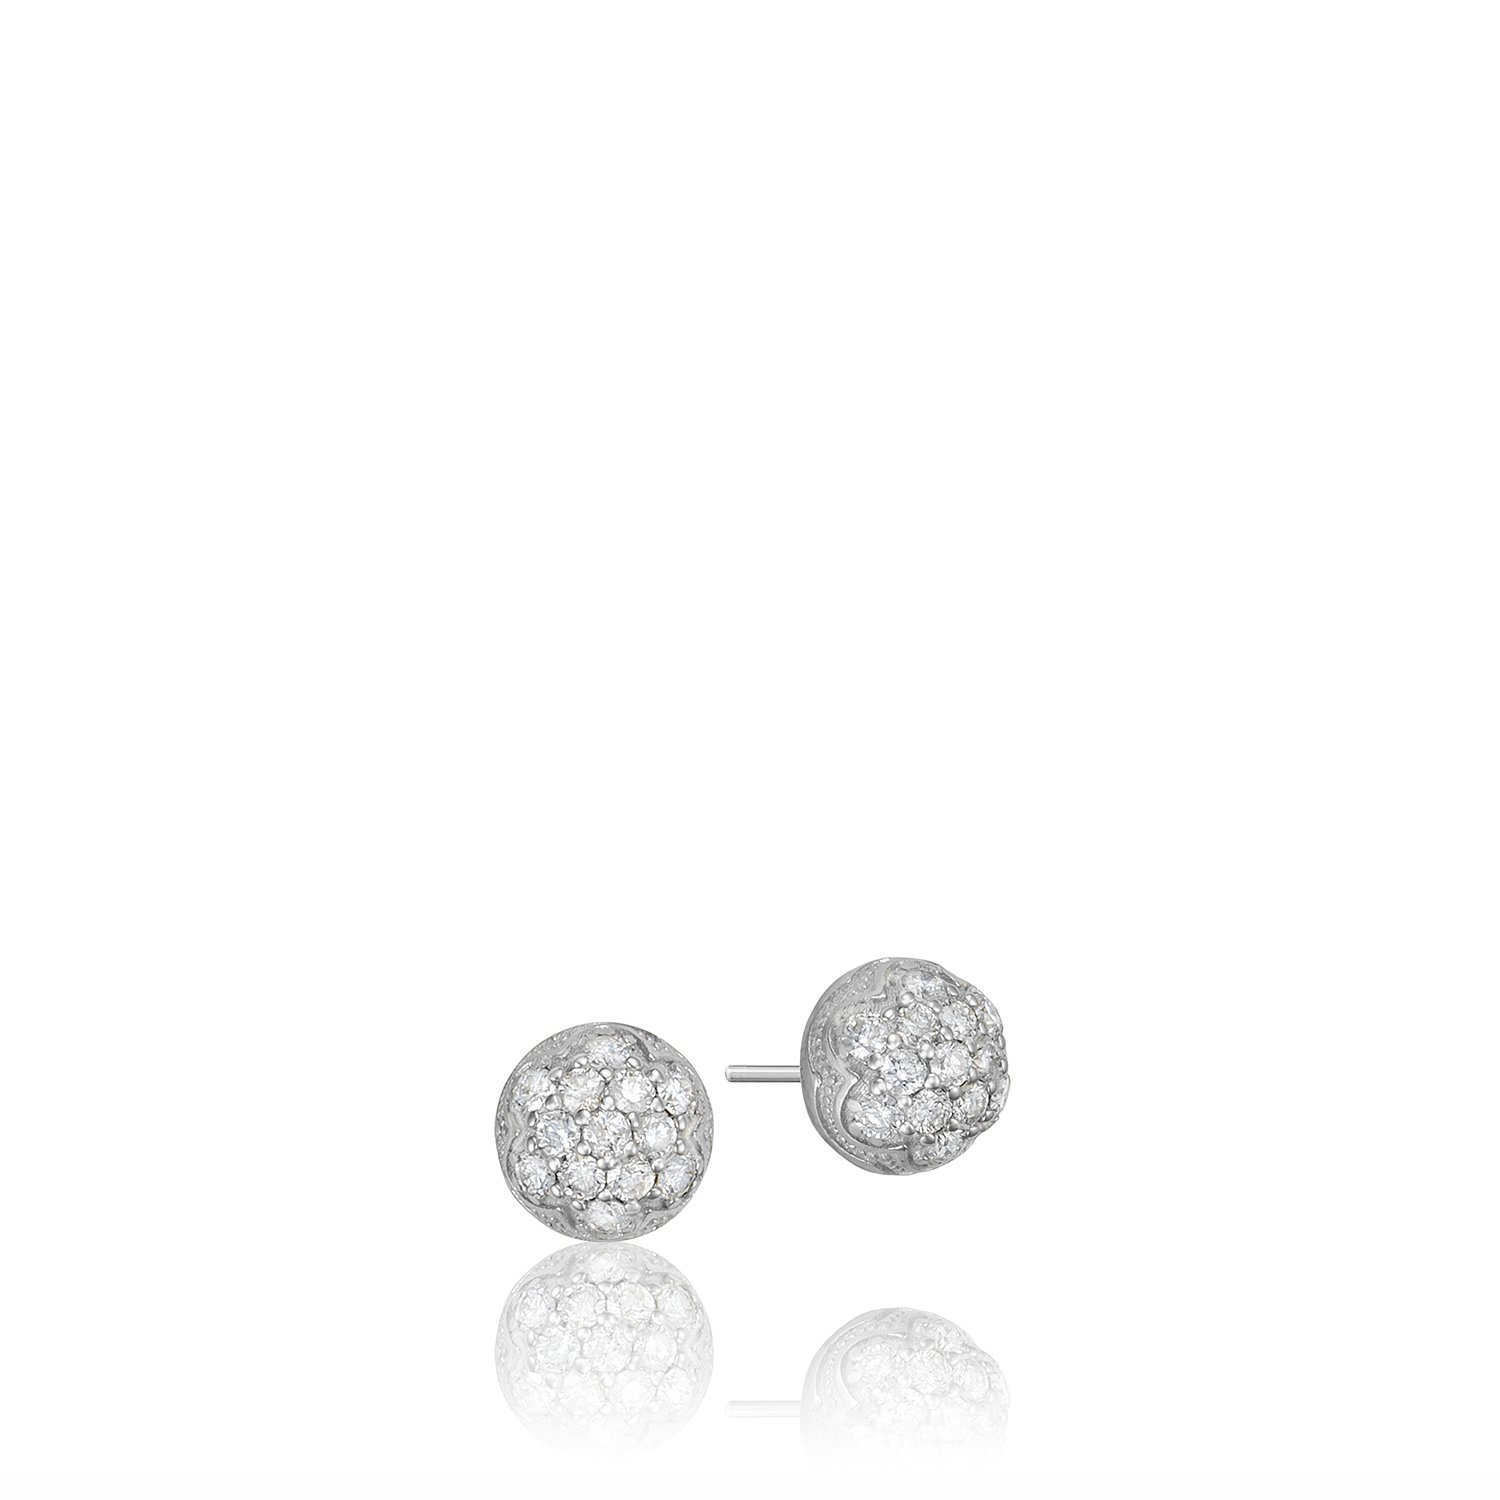 Tacori SE203 Sonoma Mist Sterling Silver Diamond Stud Earrings (0.40 cttw, H-I Color, I2-I3 Clarity)